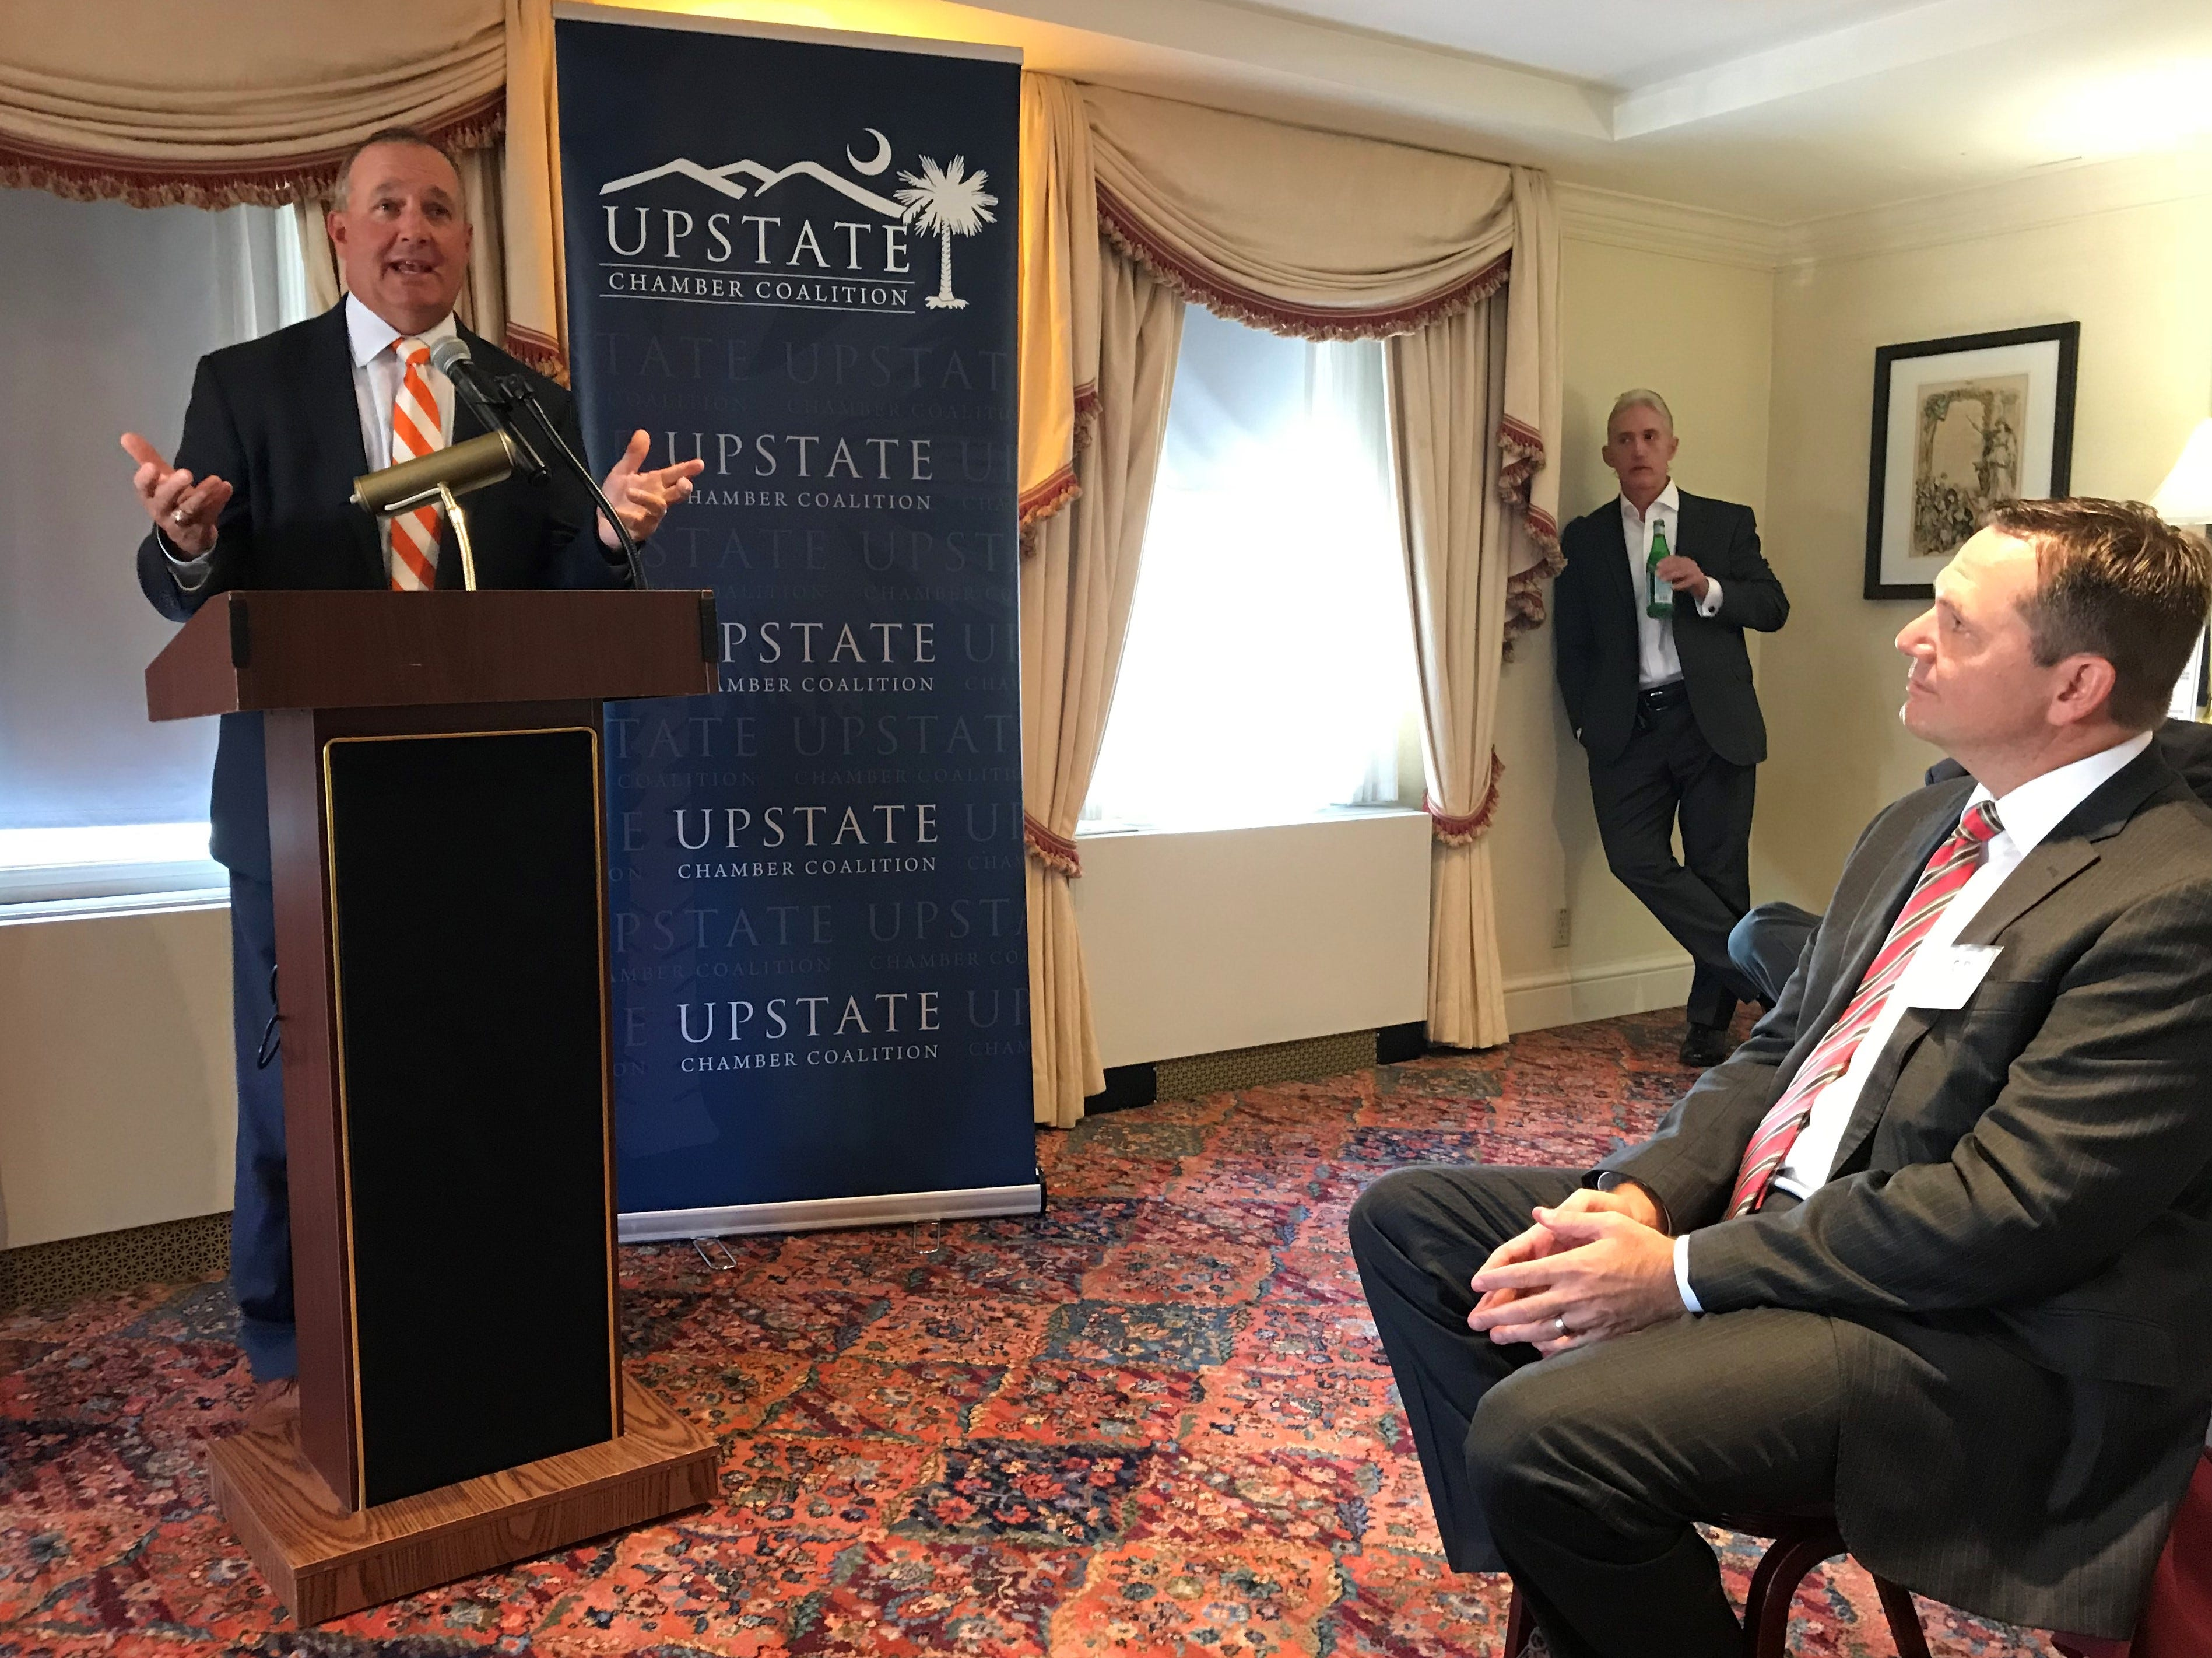 Rep.Jeff Duncan of South Carolina speaks Thursday, Sept. 6, 2018, in Washington, D.C., to a delegation from the Upstate Chamber Coalition as Rep. Trey Gowdy looks on.